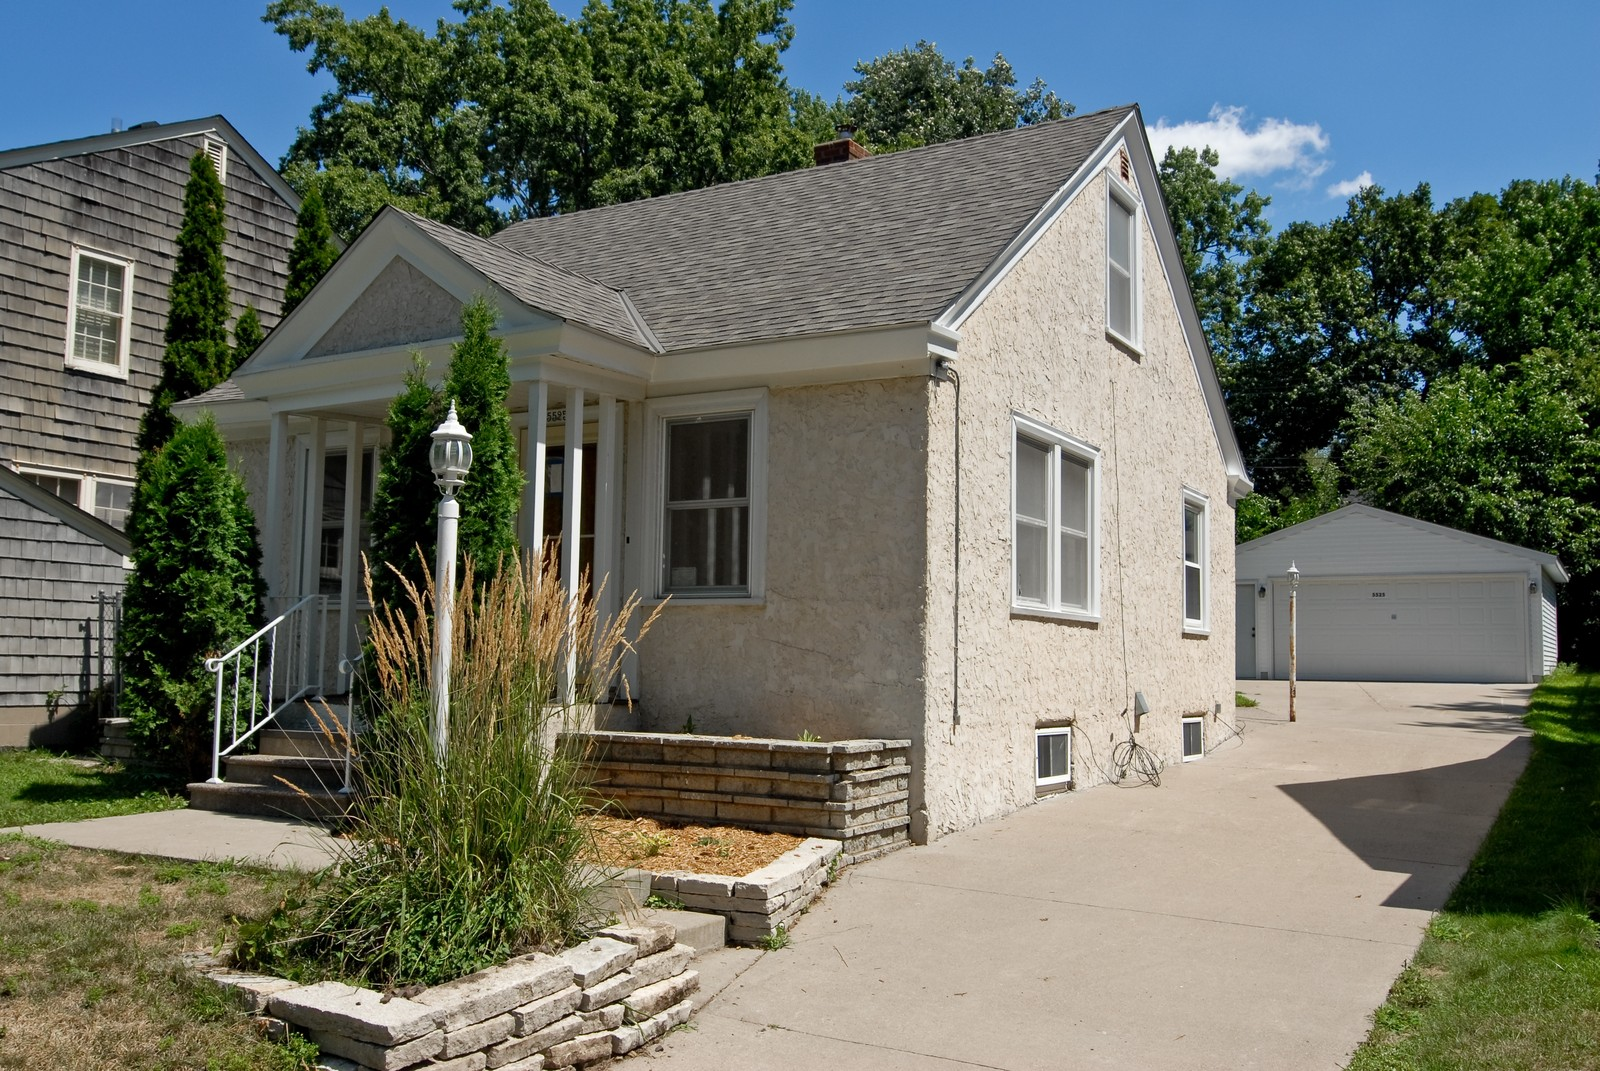 Real Estate Photography - 5525 Fremont Ave, Minneapolis, MN, 55419 - Front View